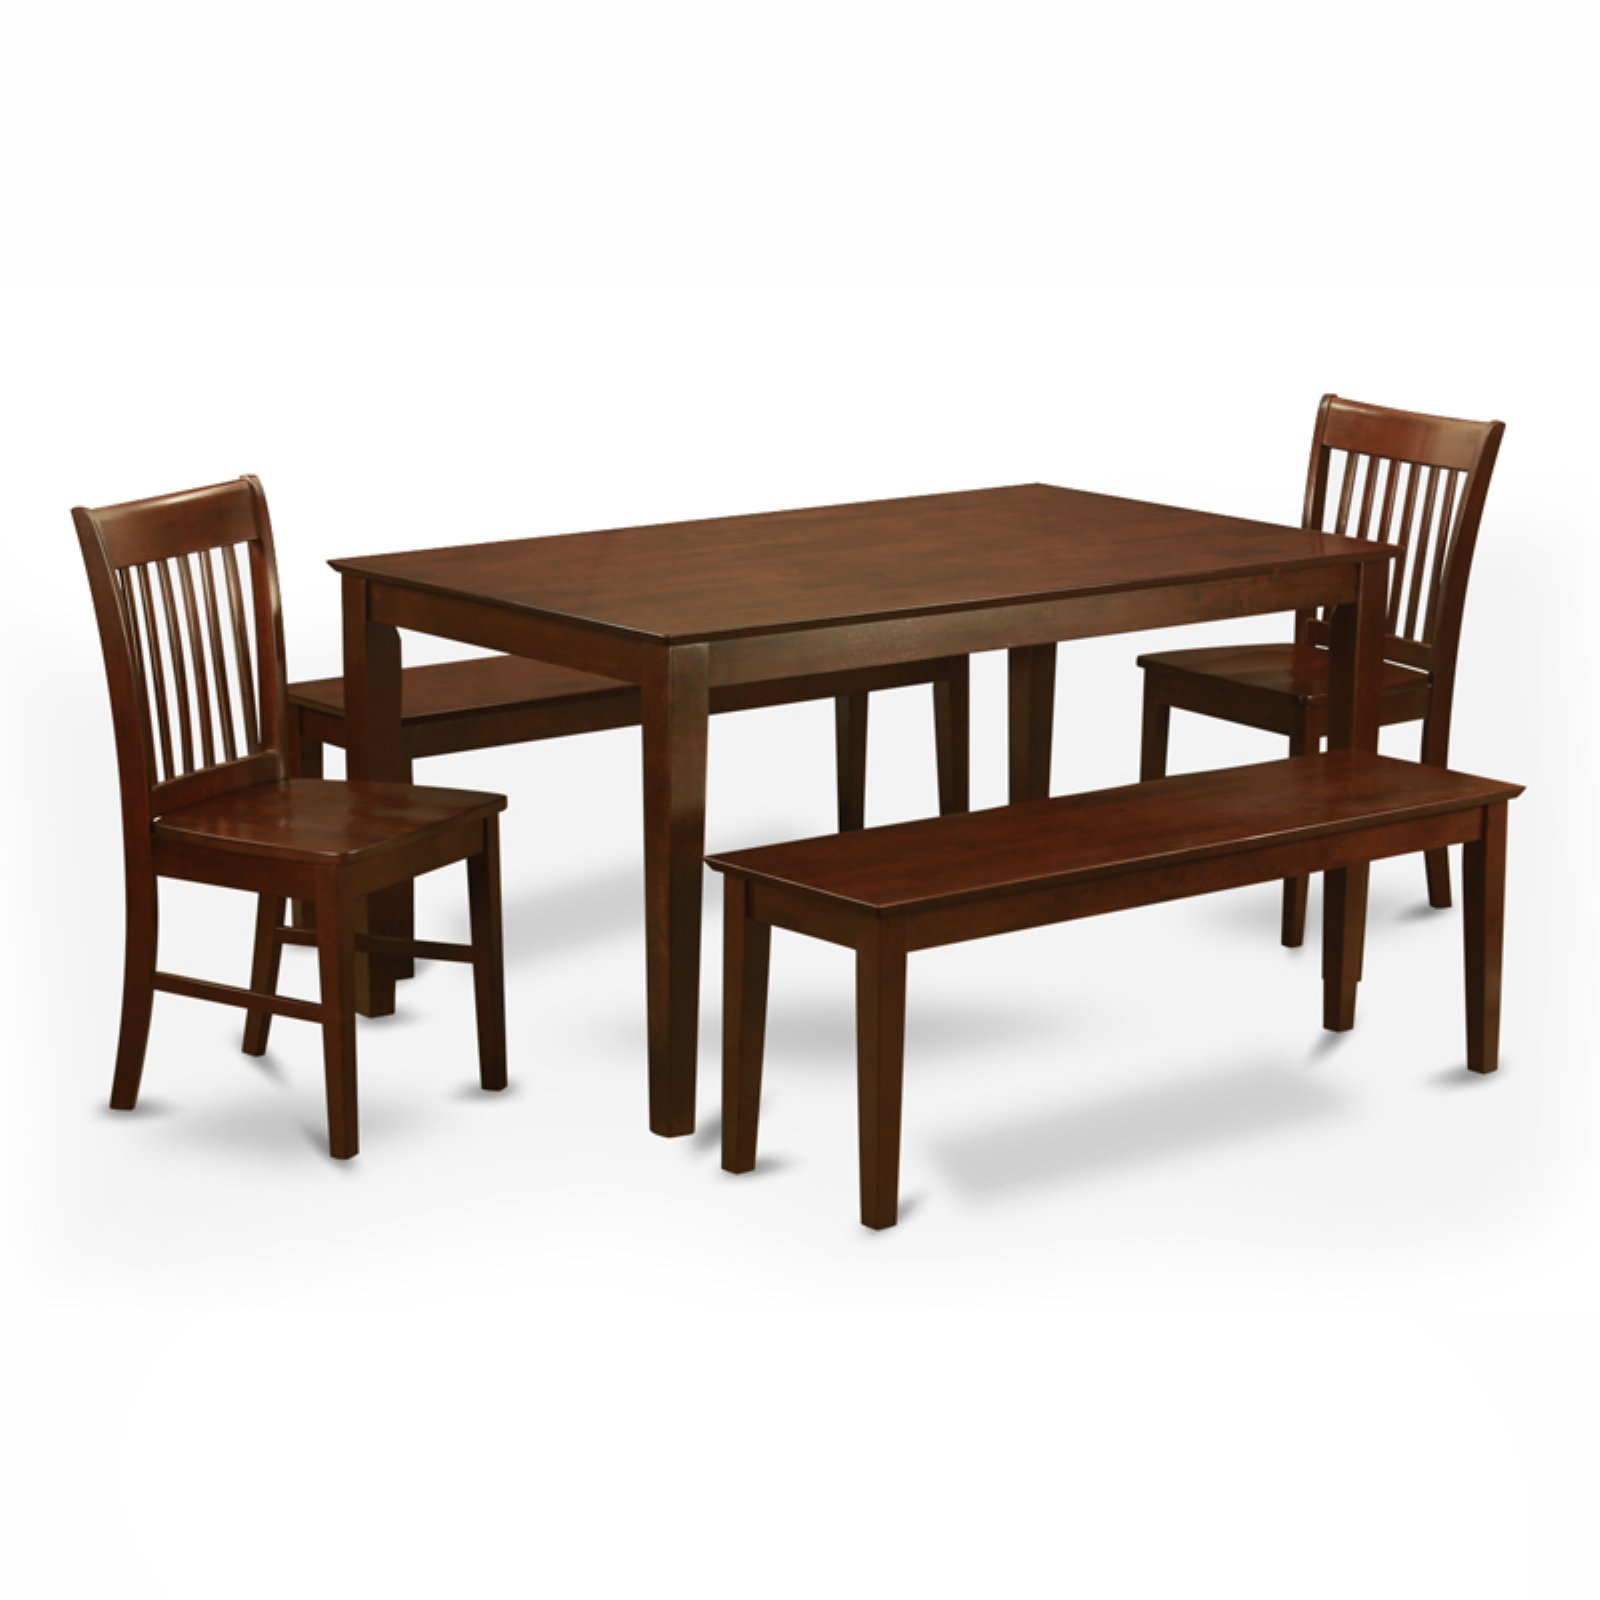 East West Furniture Capris 5 Piece Rectangular Dining Table Set with Norfolk Wooden Chairs And Benches